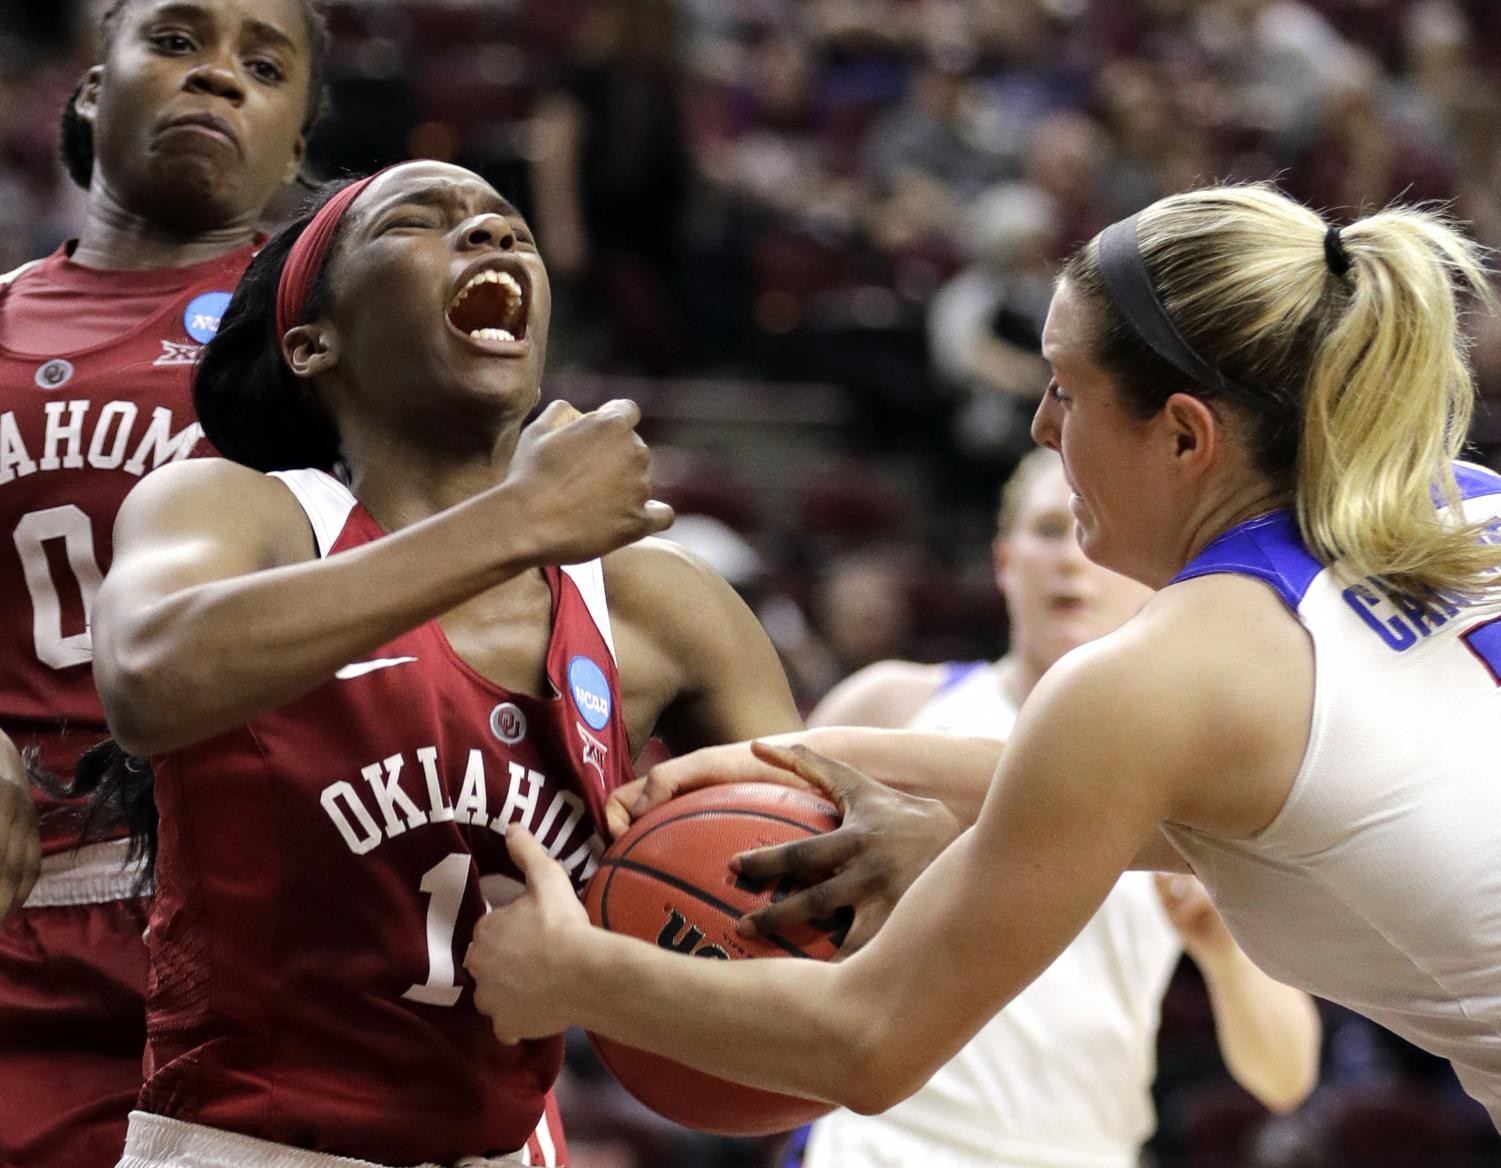 DePaul limited LaNesia Williams (left) to 1-of-9 shooting and two points in the Blue Demons win over the Sooners. David J. Phillip | AP